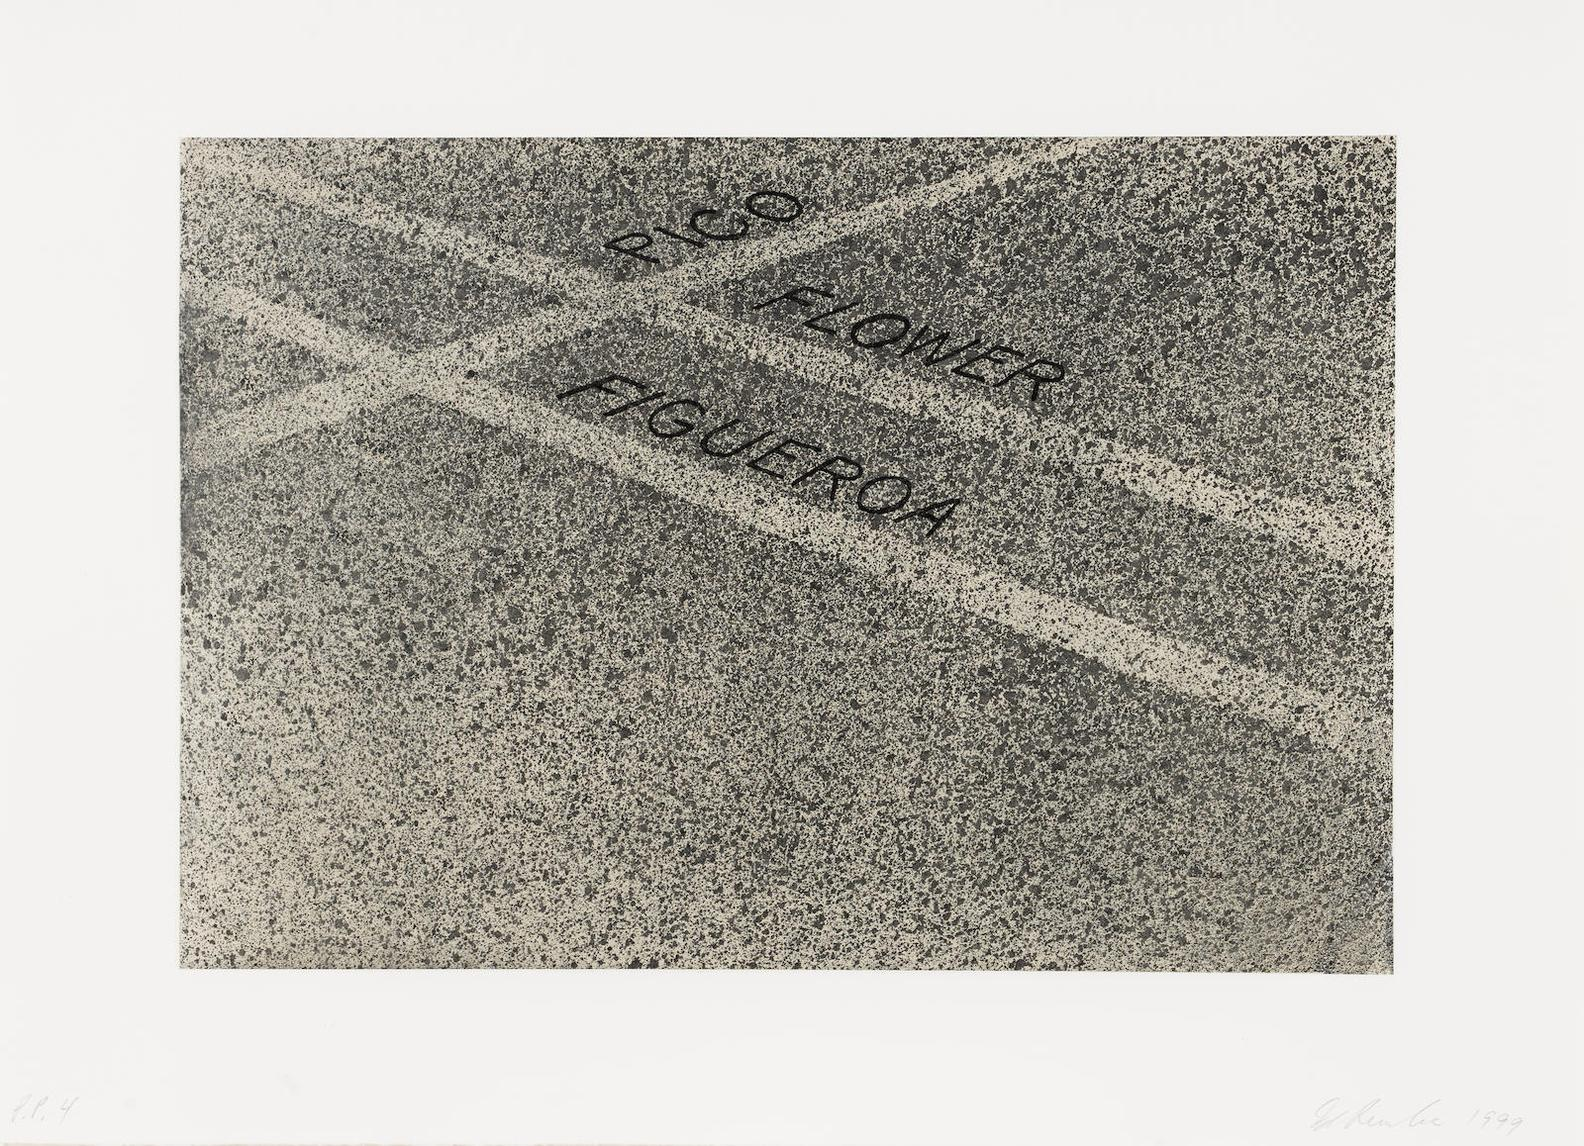 Ed Ruscha-Pico, Flower, Figueroa, From The Moca Portfolio-1999